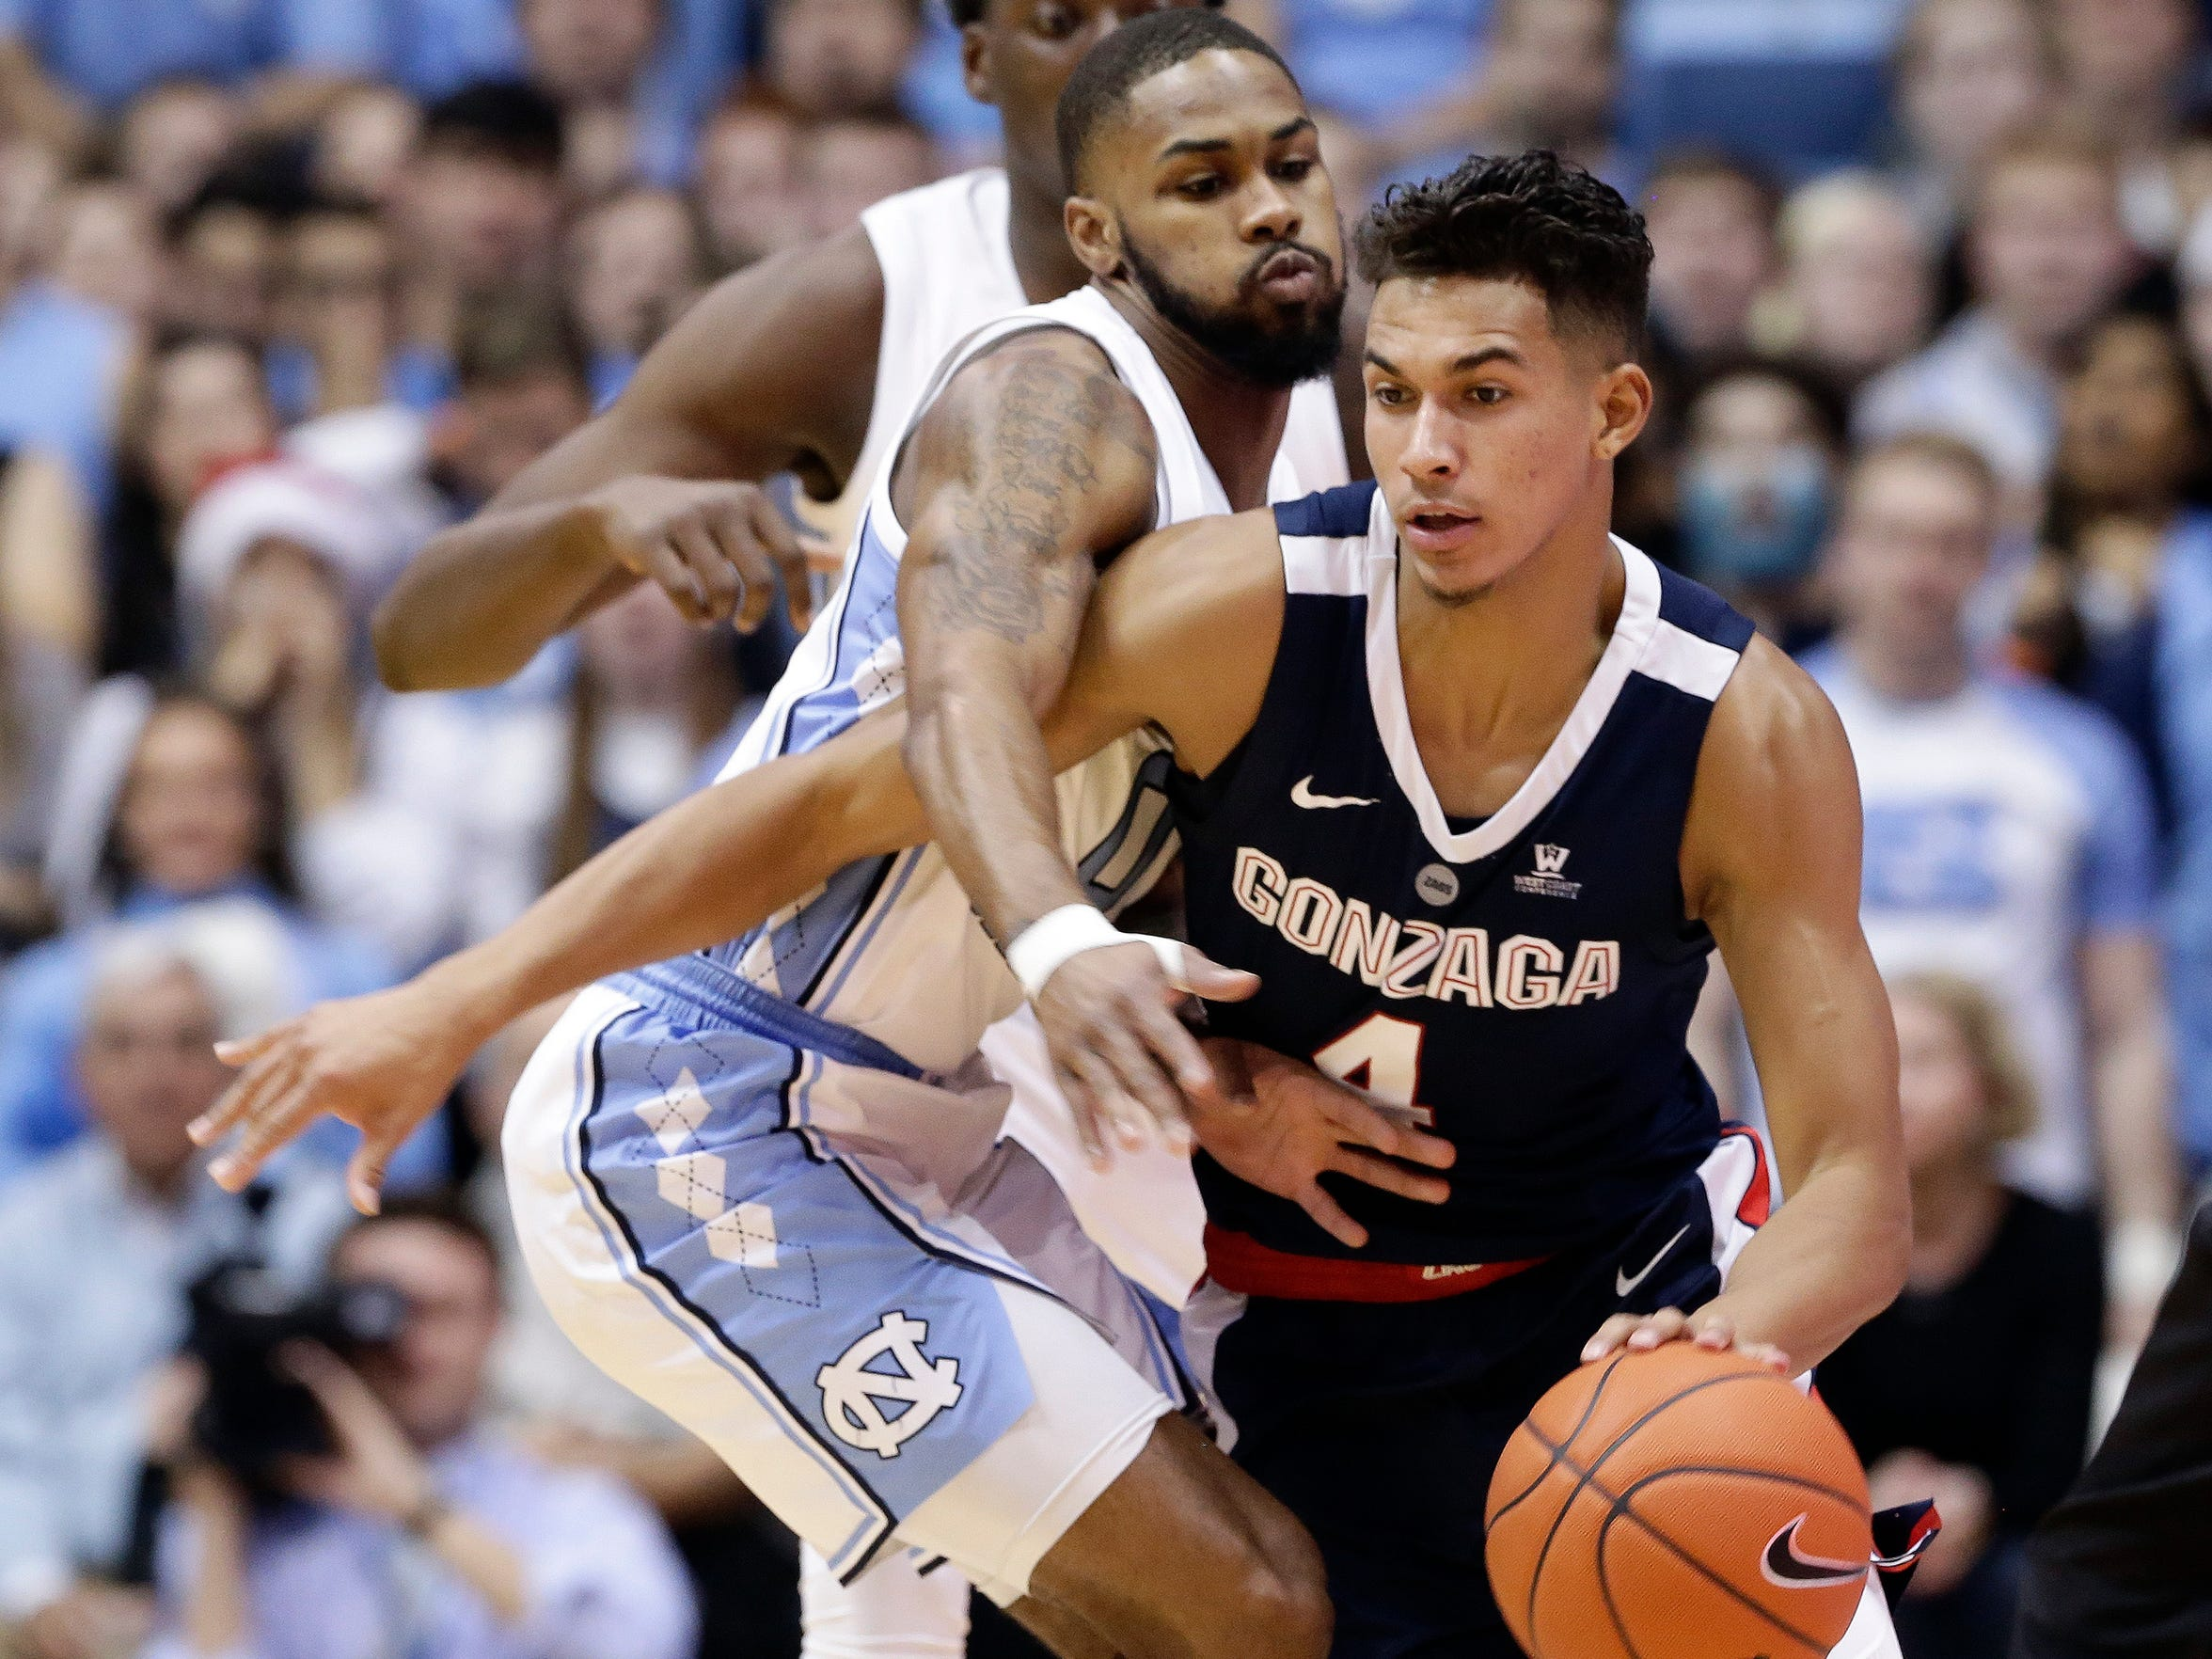 Gonzaga_North_Carolina_Basketball_72546.jpg